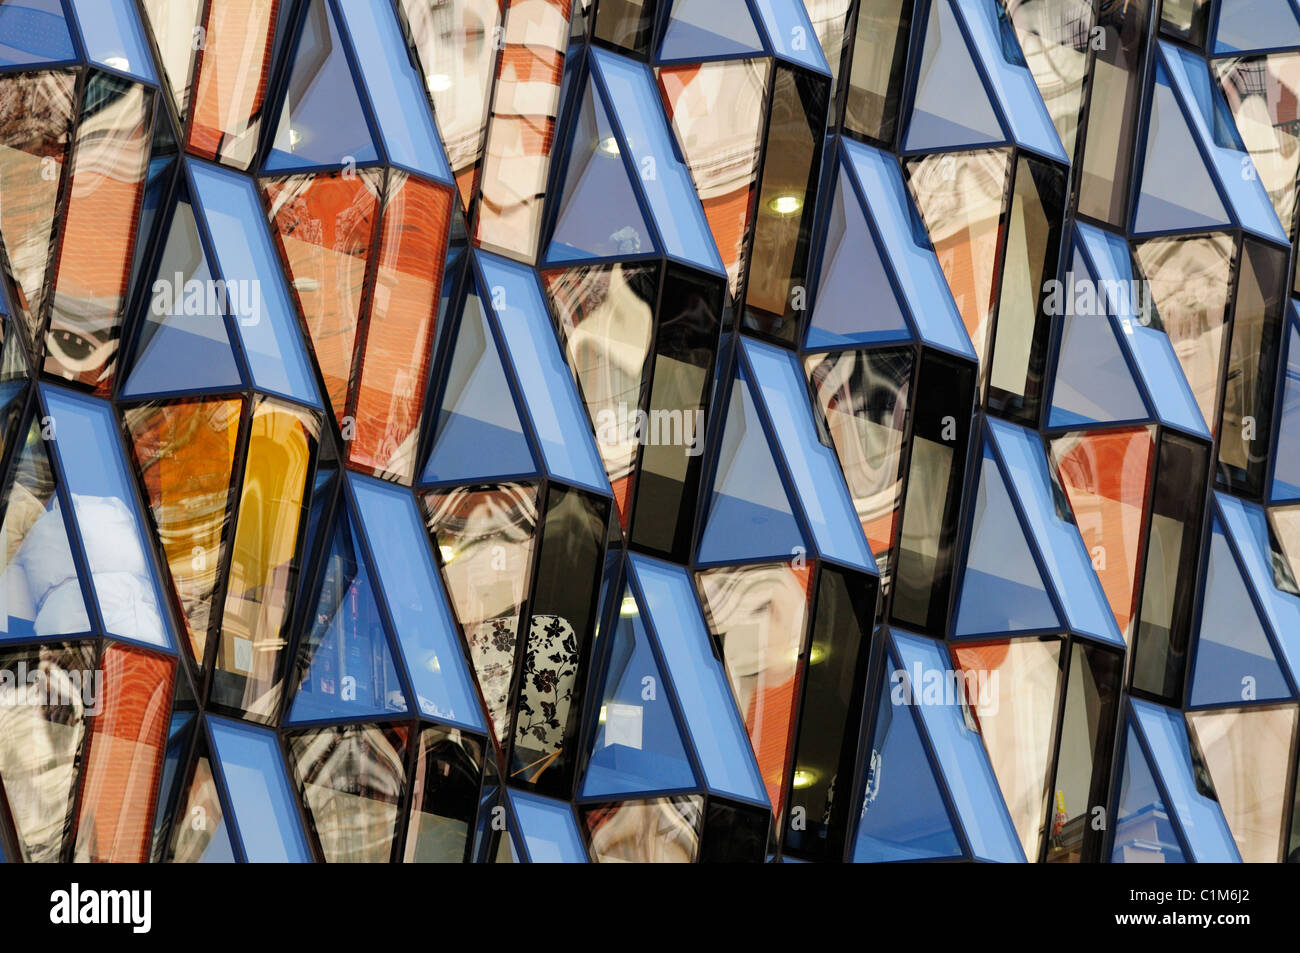 Abstract Building Detail, Oxford Street, London, England, UK - Stock Image